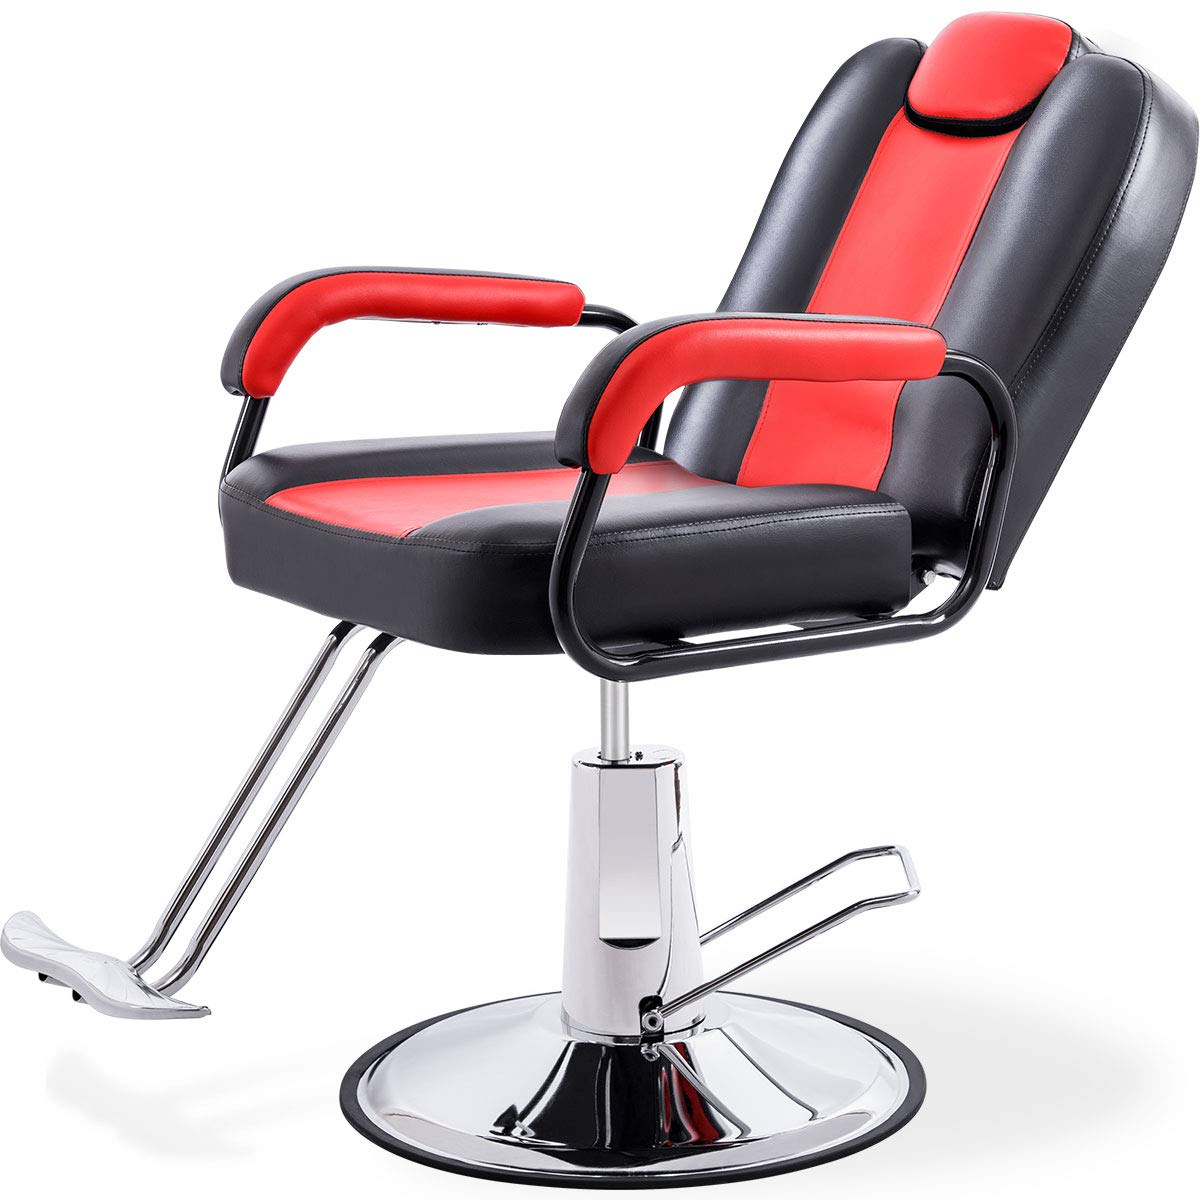 Hydraulic Recliner Barber Chair for Hair Salon with 20% Extra Wider Seat & Heavy Duty Hydraulic Pump, 2019 Upgraded Salon Beauty Equipment (Black & Red) by Merax